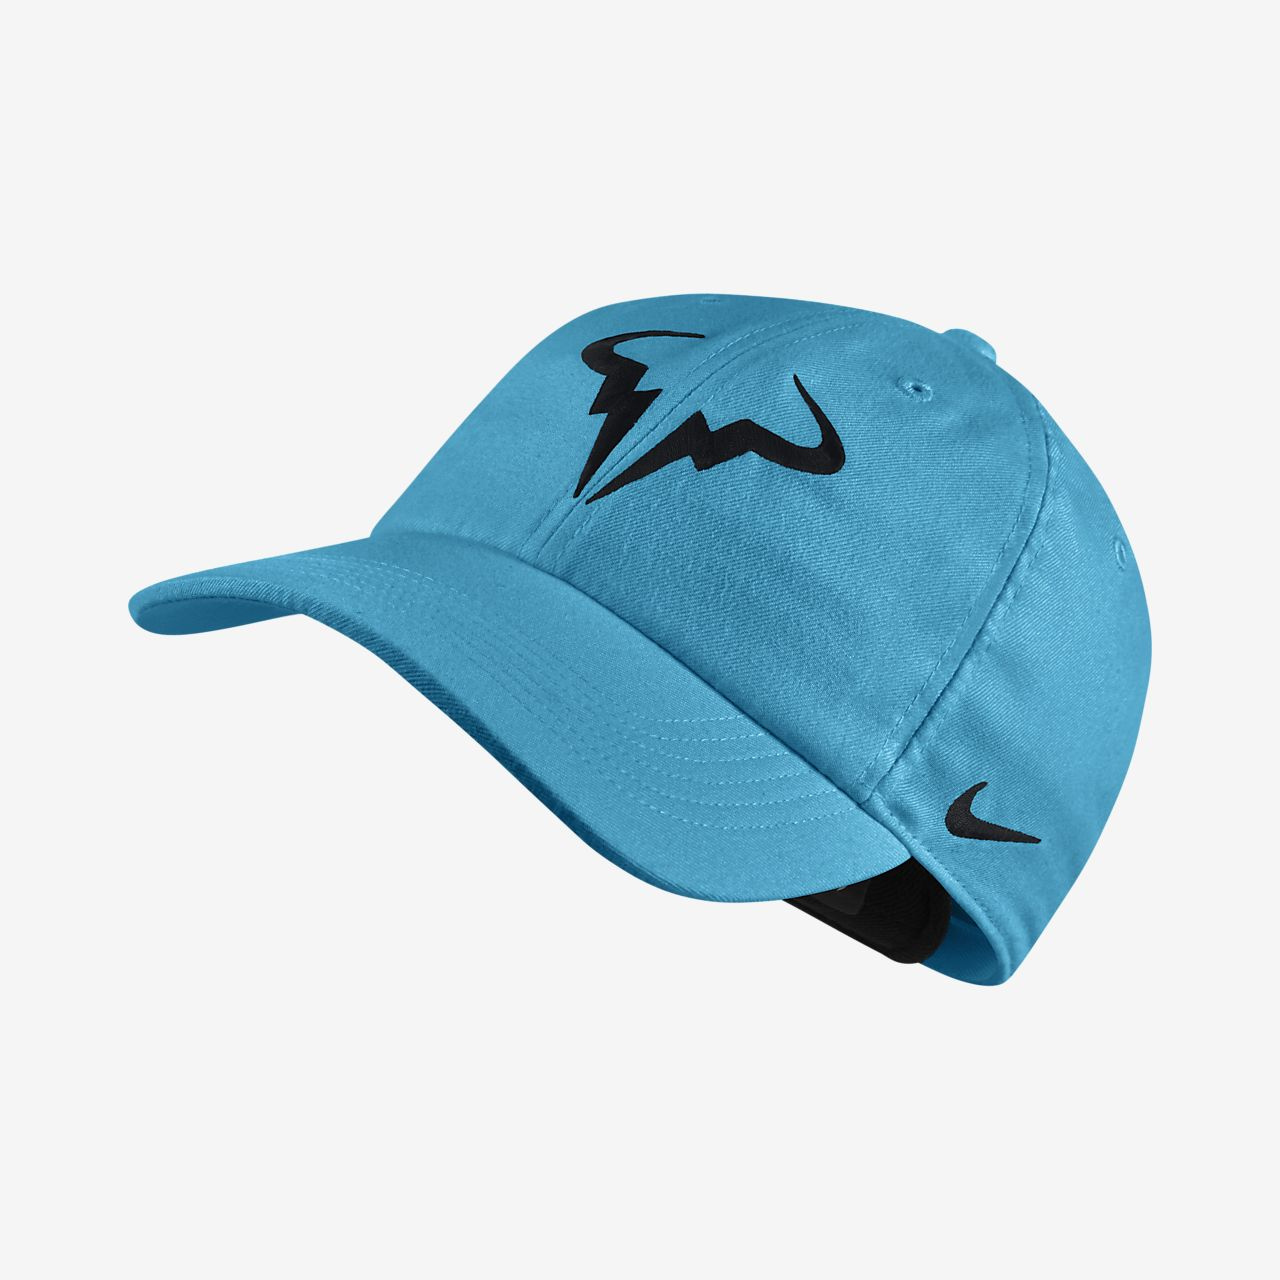 aa278066156 NikeCourt AeroBill Rafa H86 Adjustable Tennis Hat. Nike.com BE